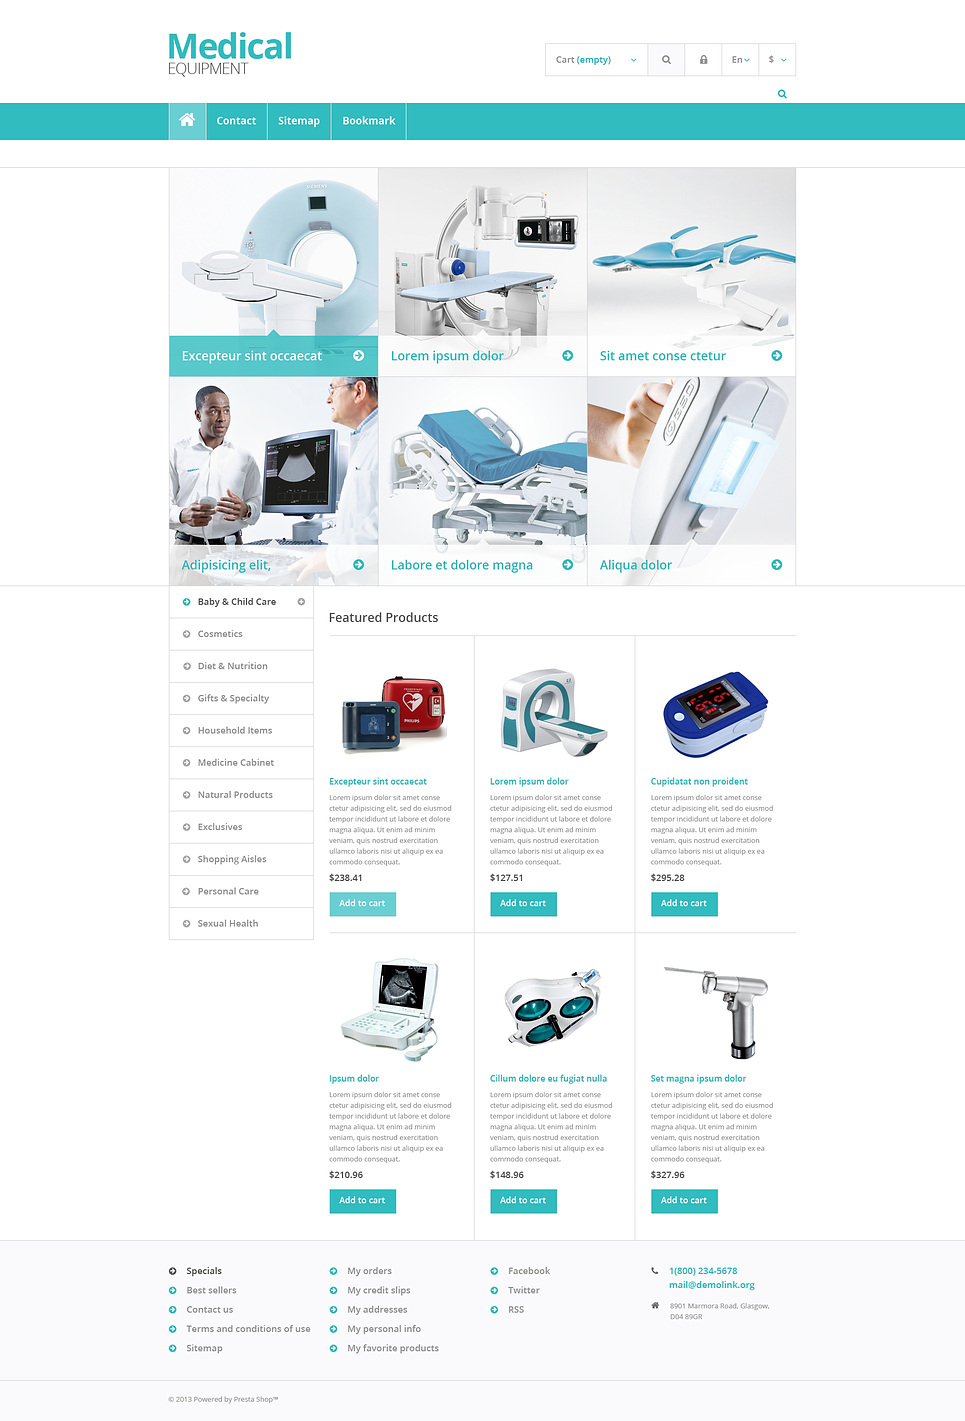 10+ Medical Equipment & First Aid Supplies Ecommerce PrestaShop ...